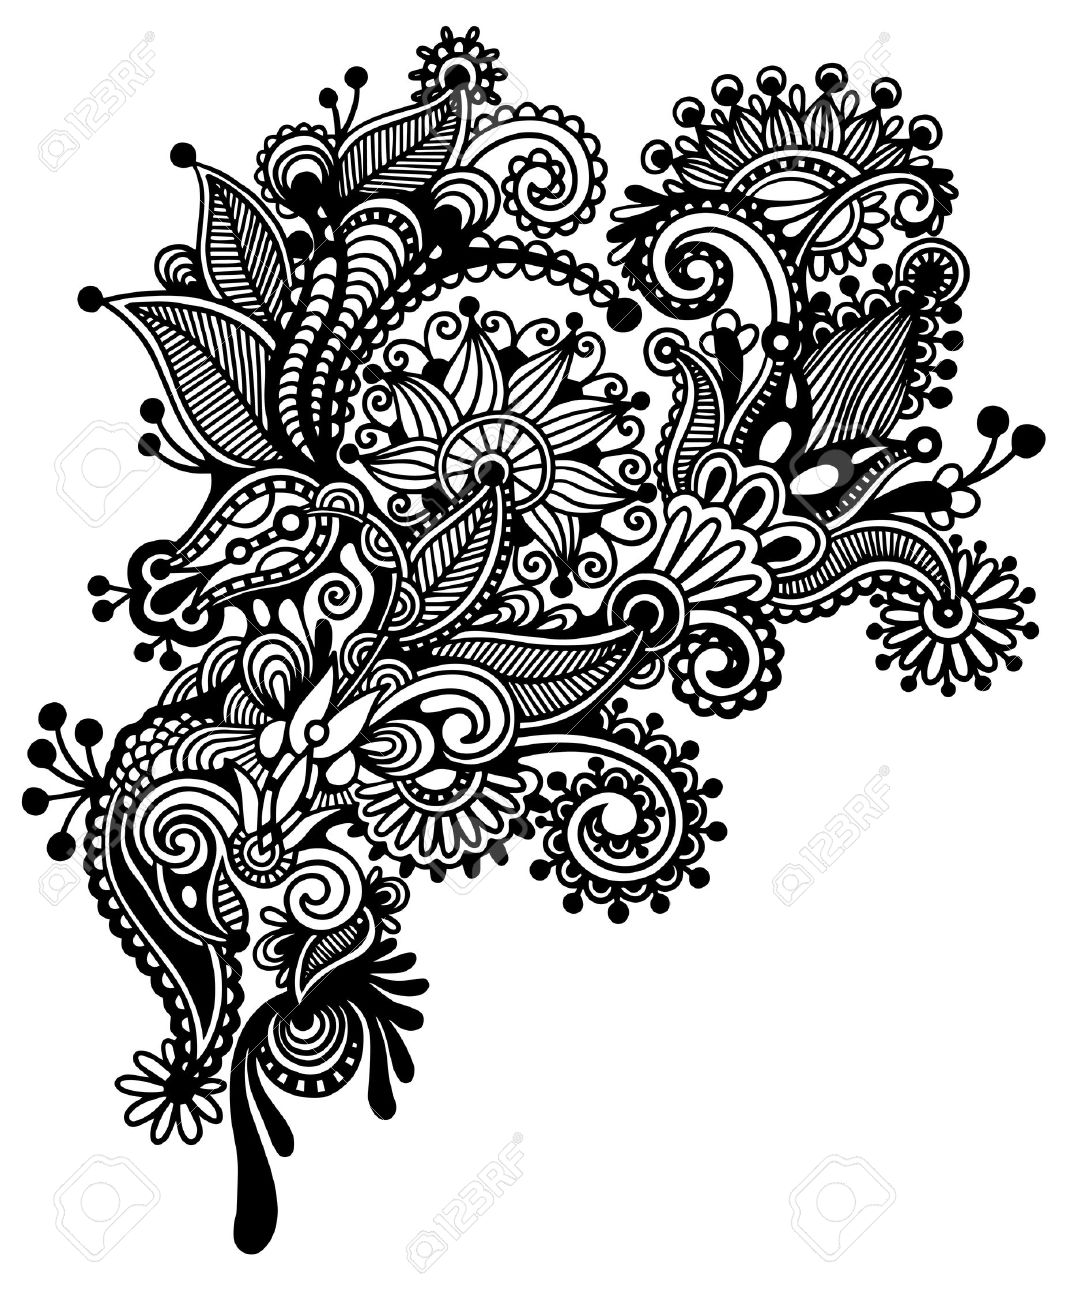 Black And White Line Art Ornate Flower Design Ukrainian Traditional